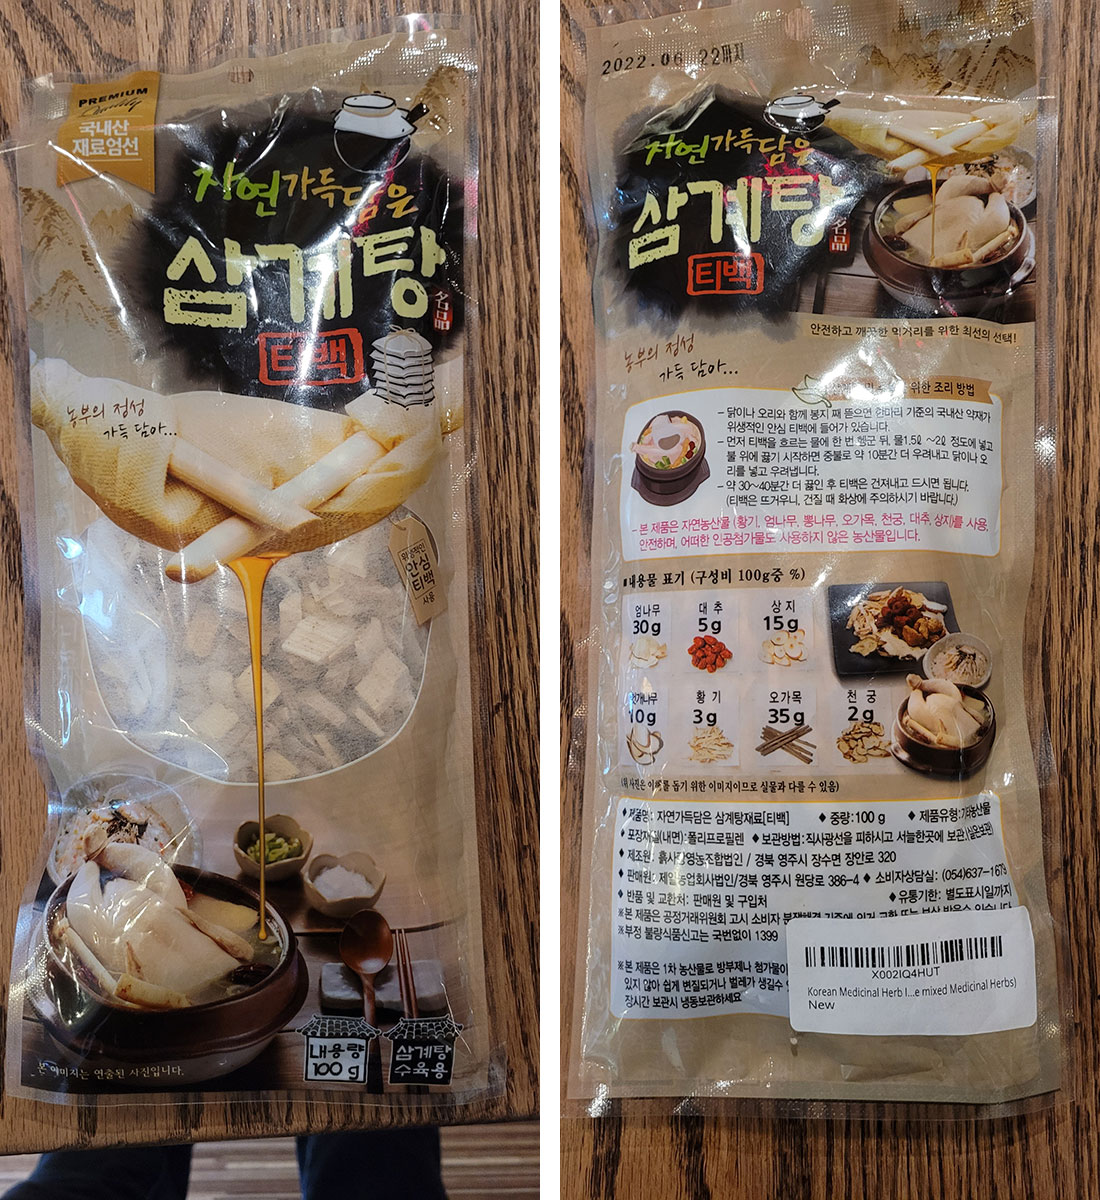 Front and back of the dried herbal package with instructions and instructions in Korean.